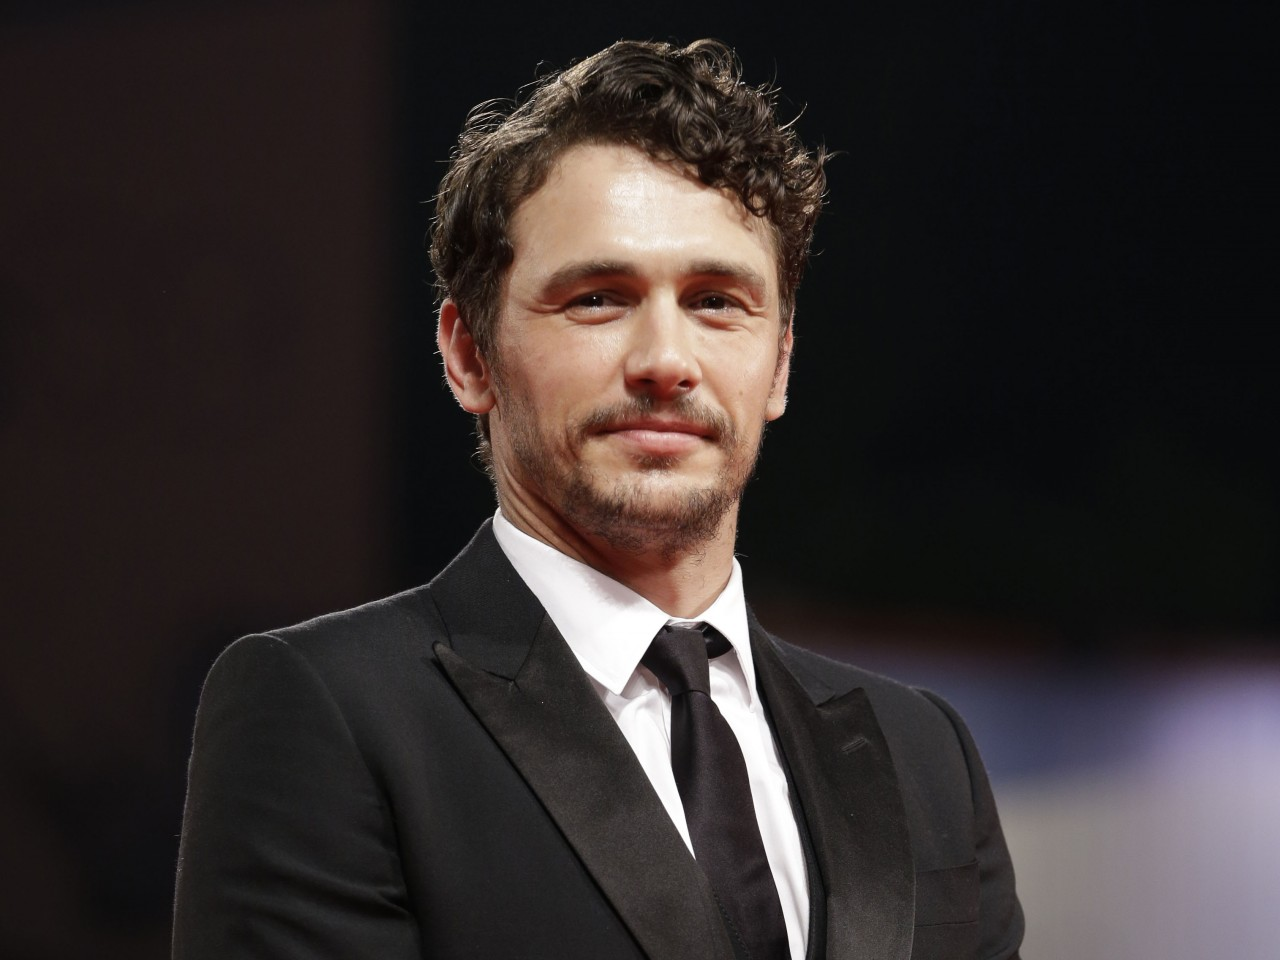 people-james-franco.jpeg-1280x960